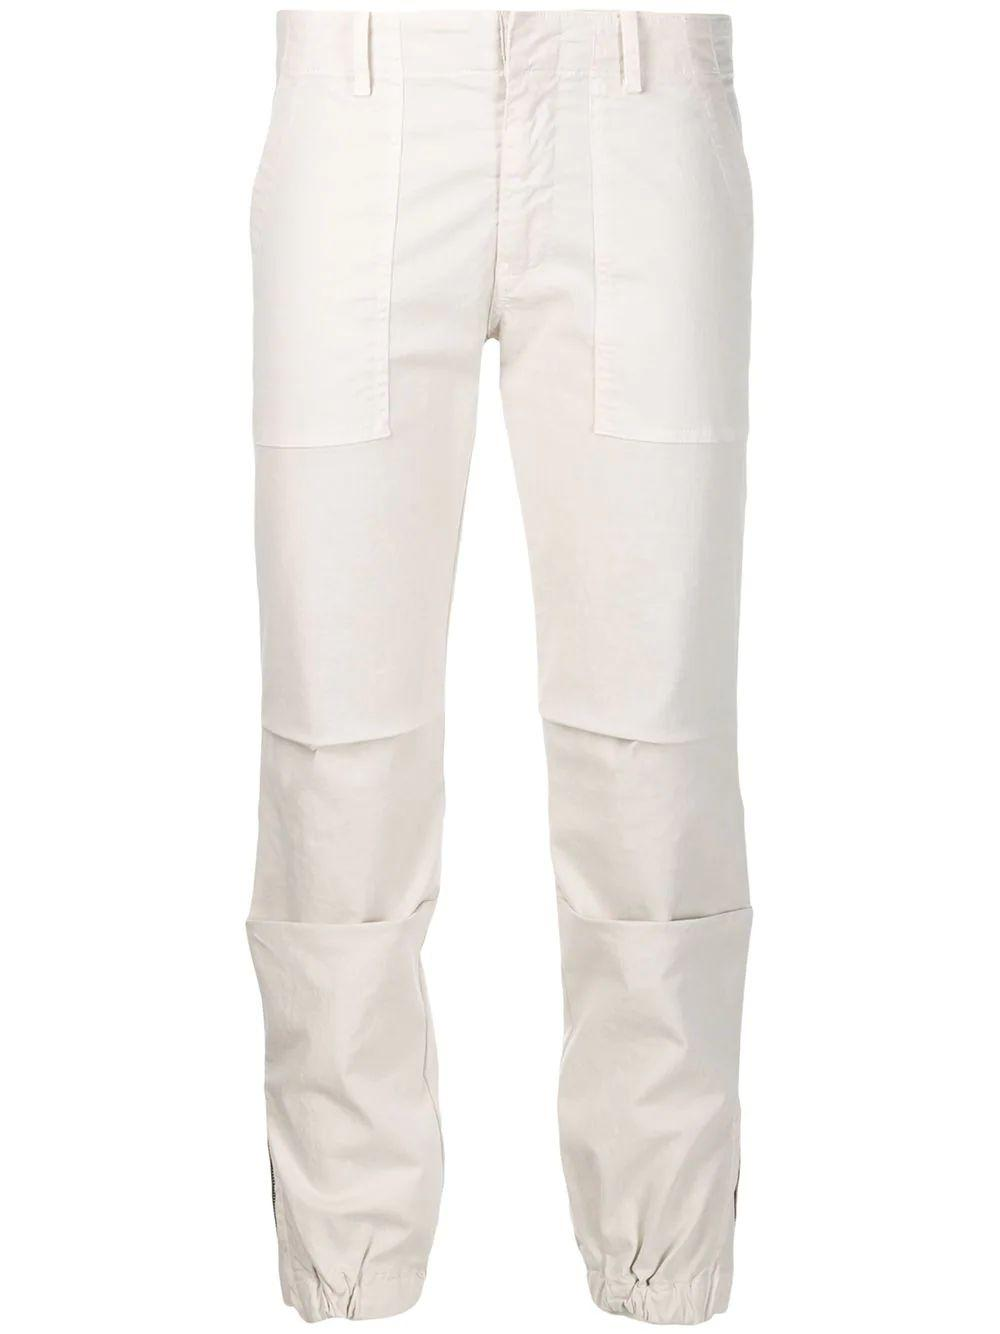 Cropped Military Pant Item # 99-W12